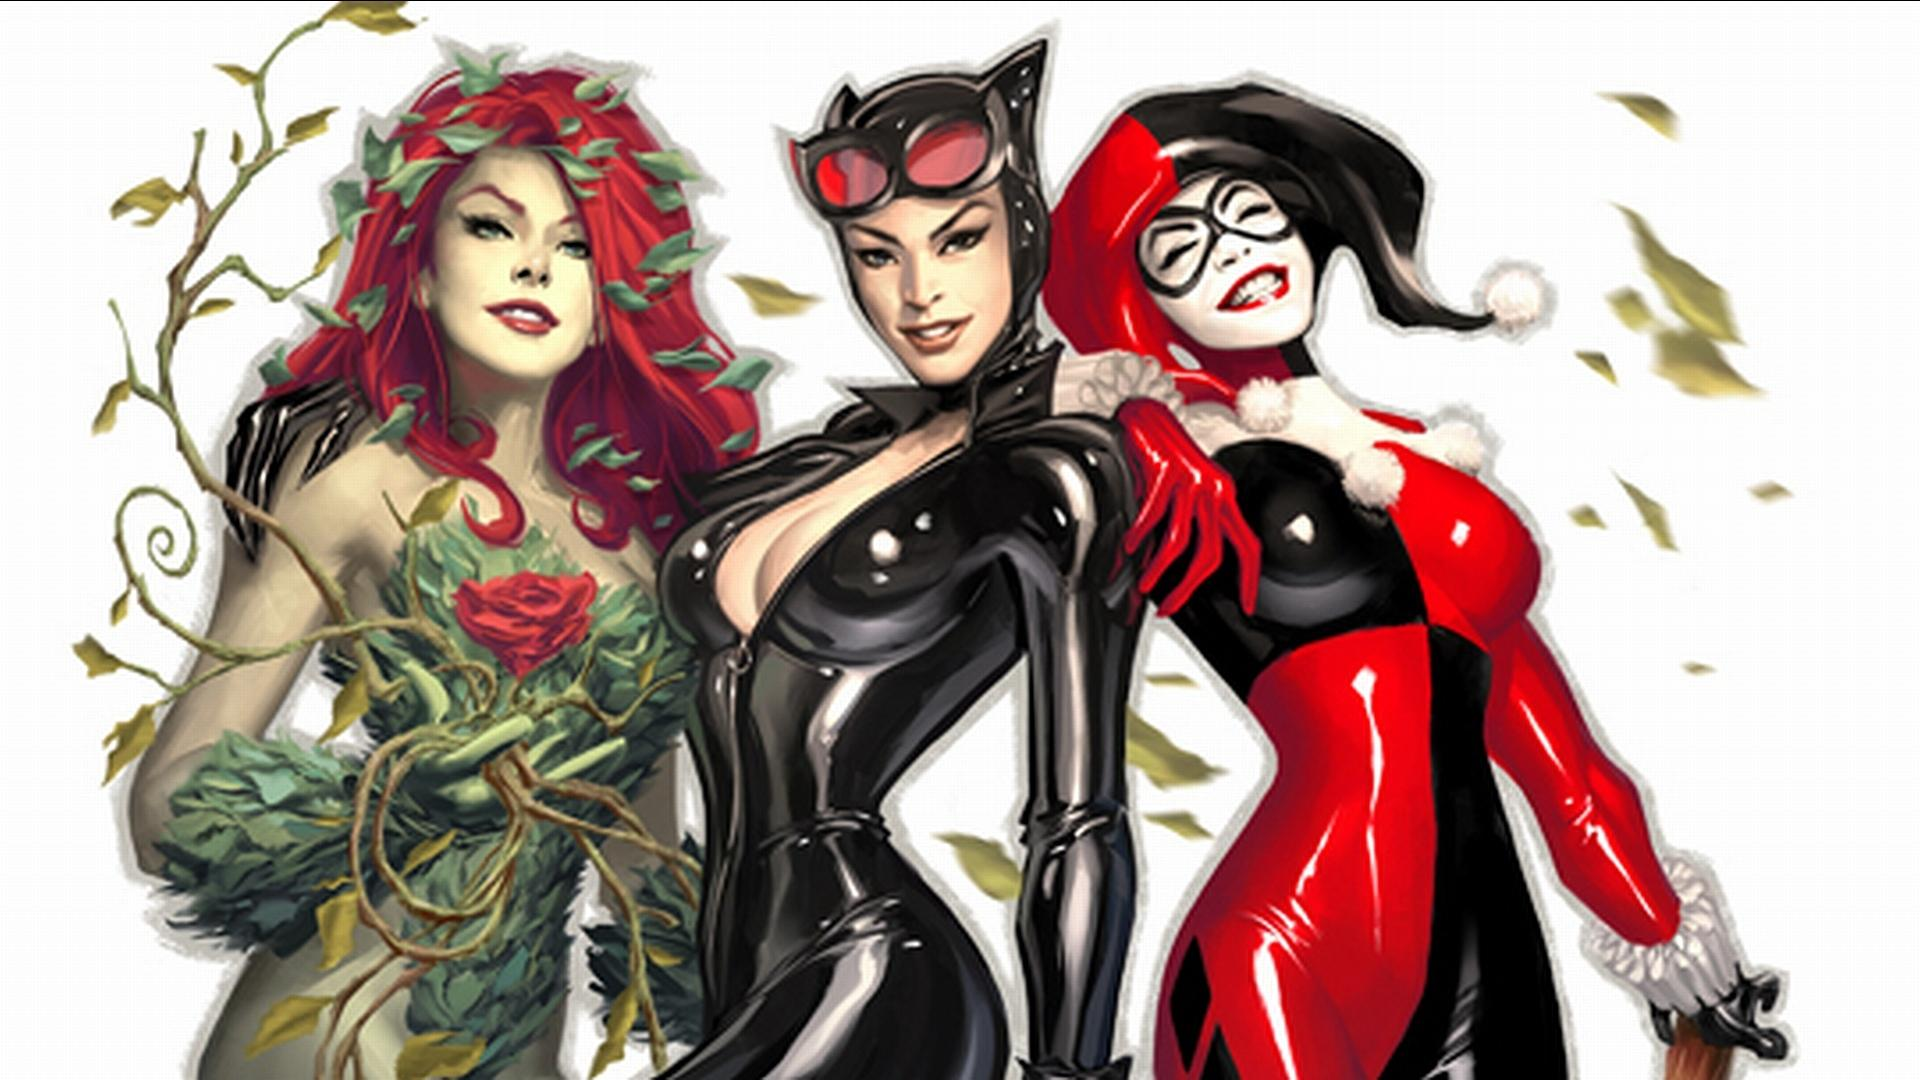 Gotham City Sirens wallpapers HD quality